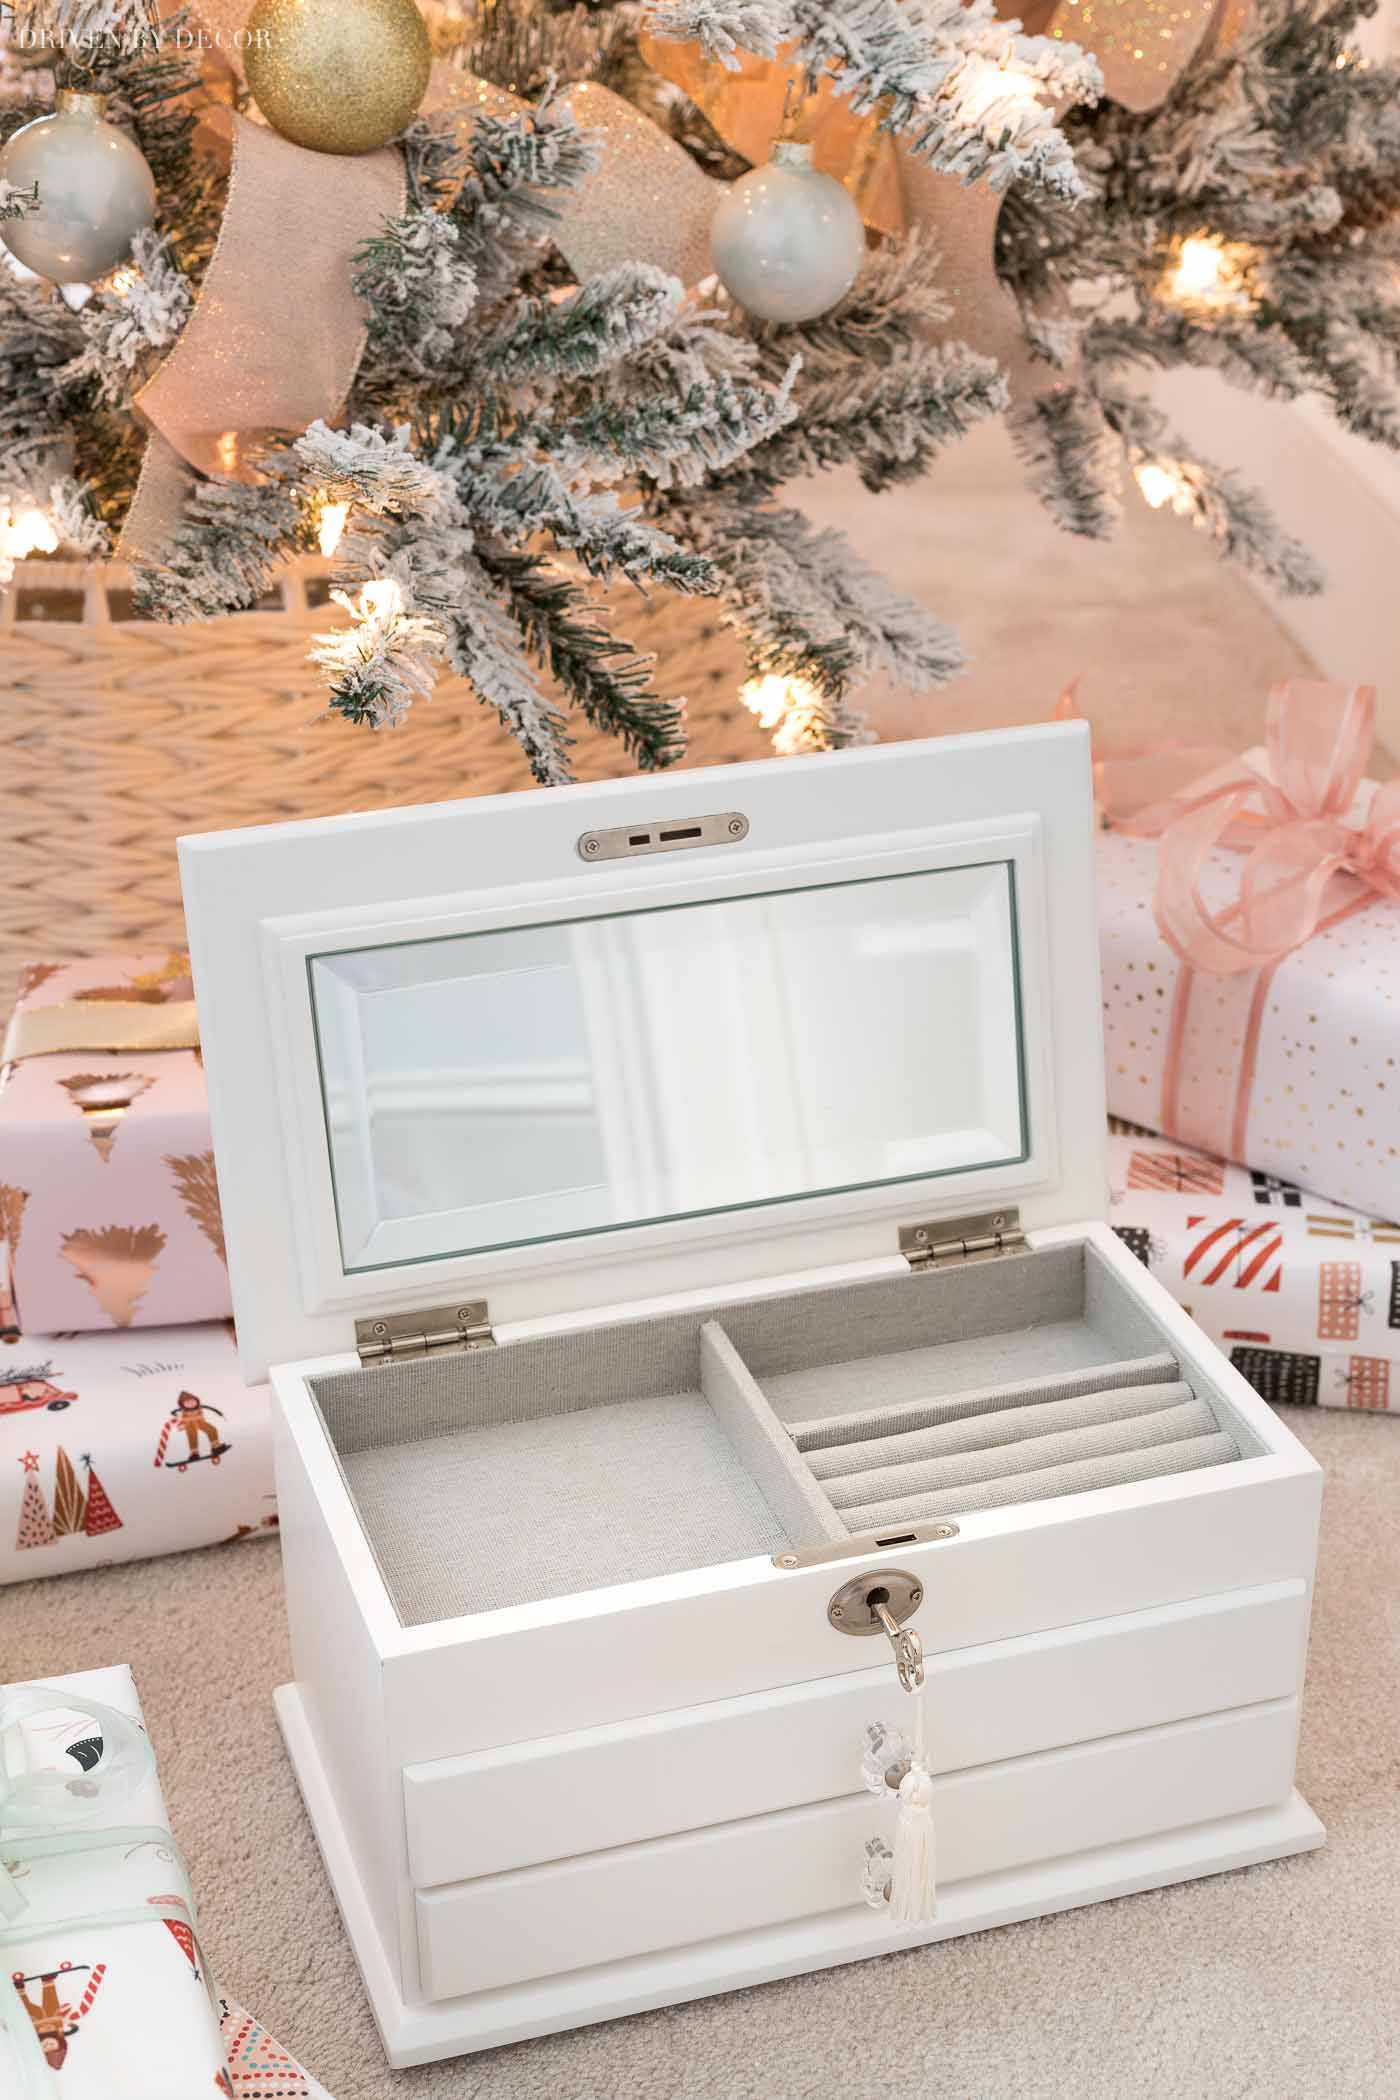 Beautiful jewelry box! One of the gifts I love most in this post about Christmas gift ideas for teen girls!